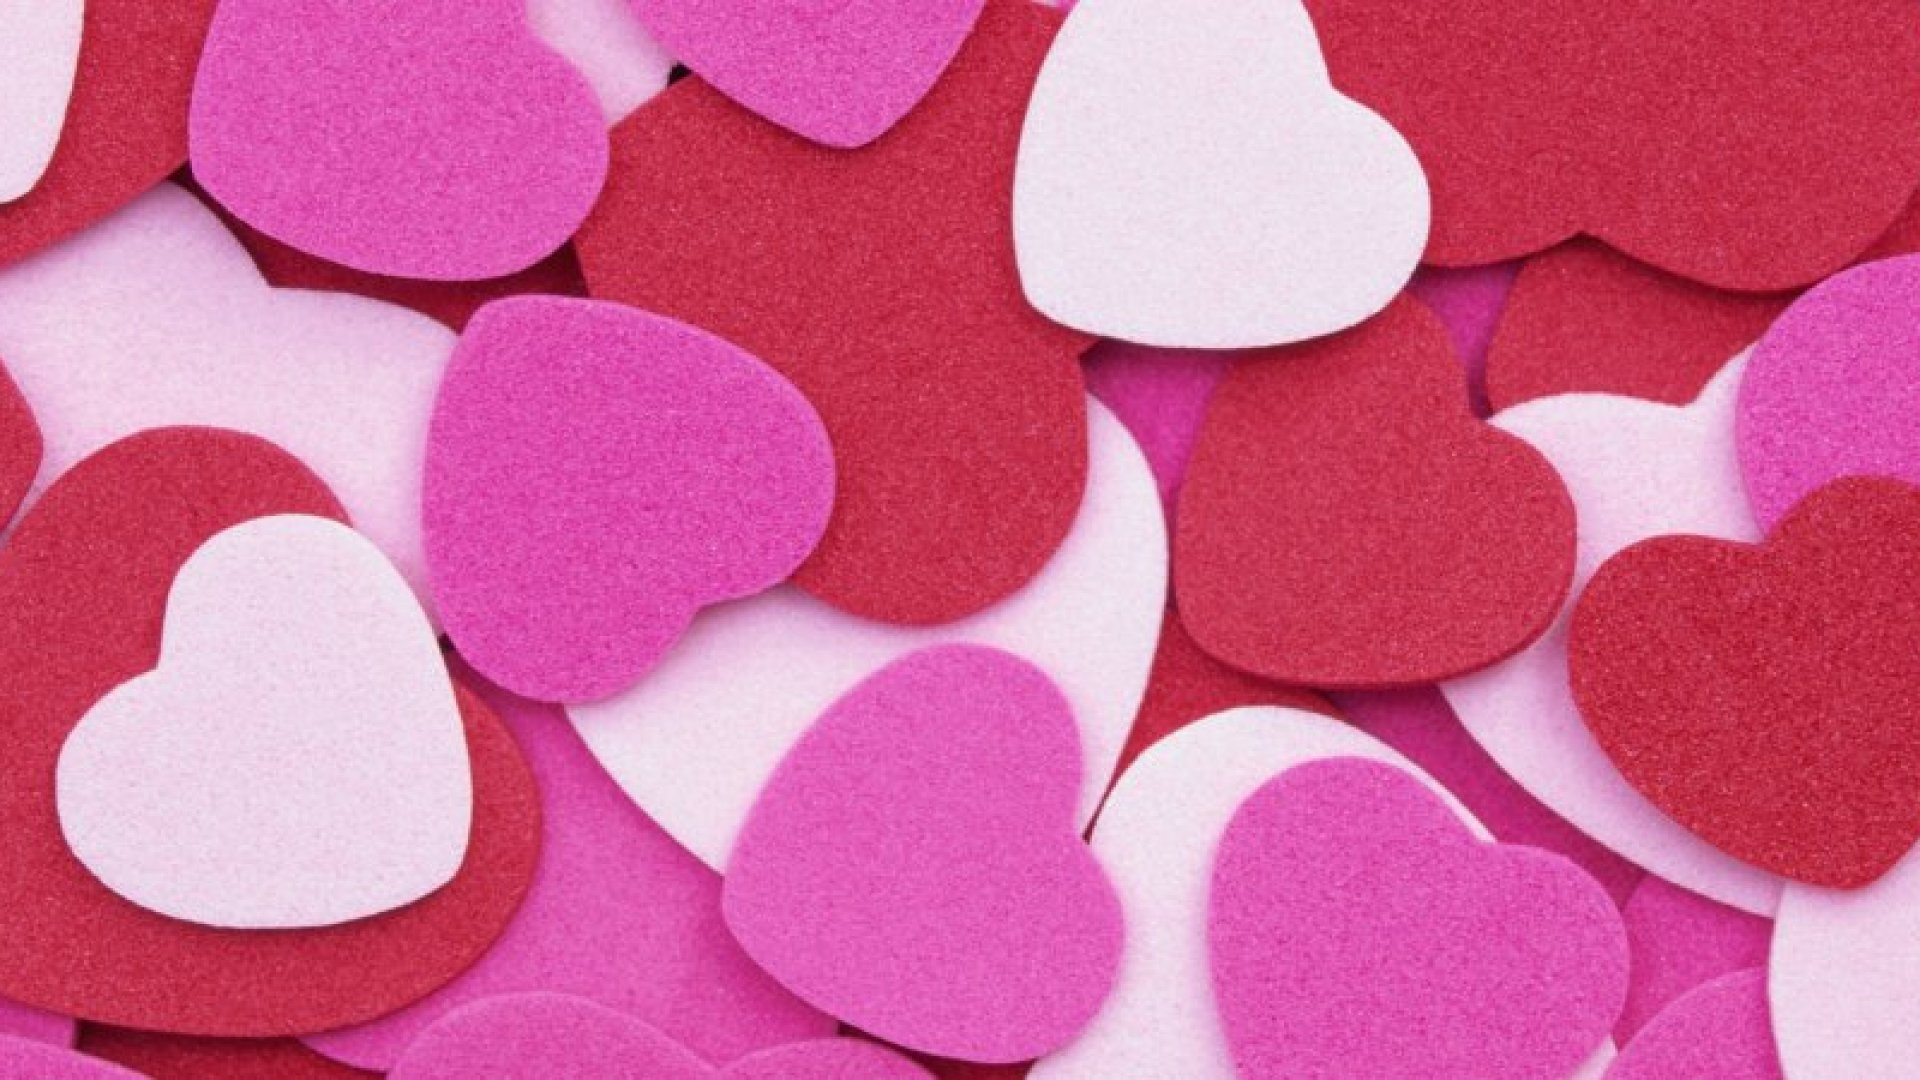 The Fallacy of 'Love What You Do'